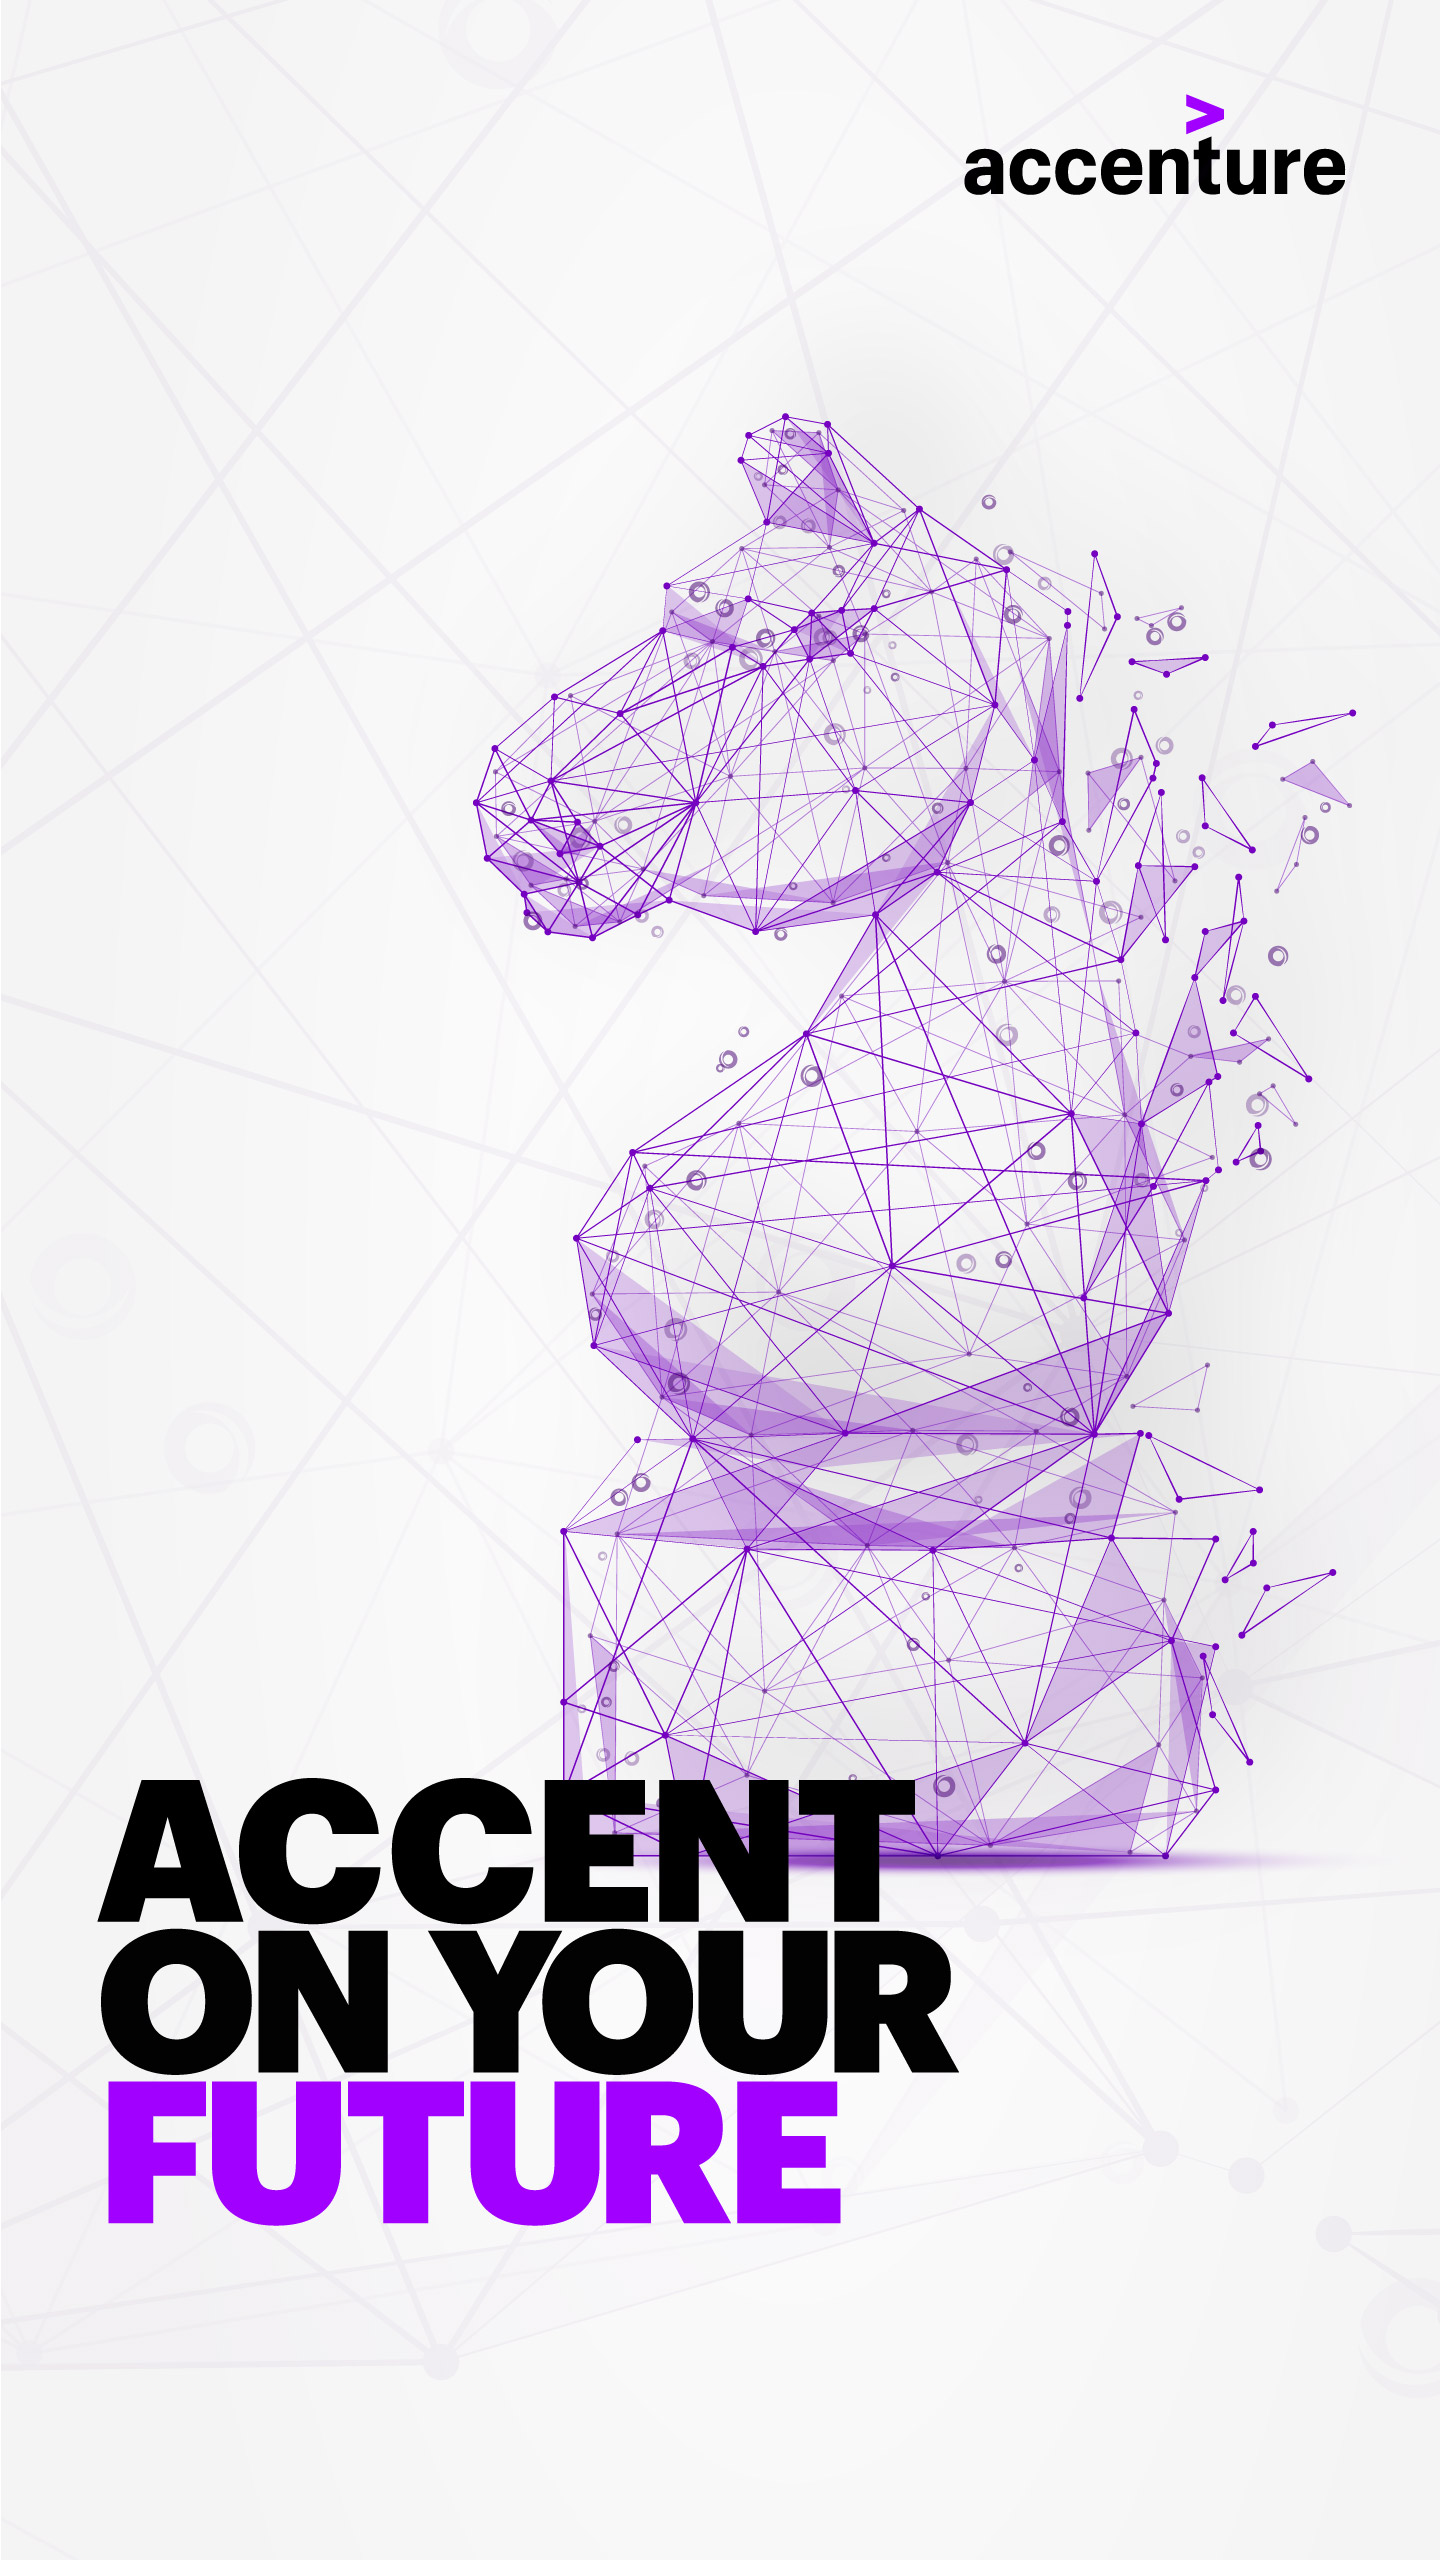 Accent on your future – to program rozwojowy - Accenture